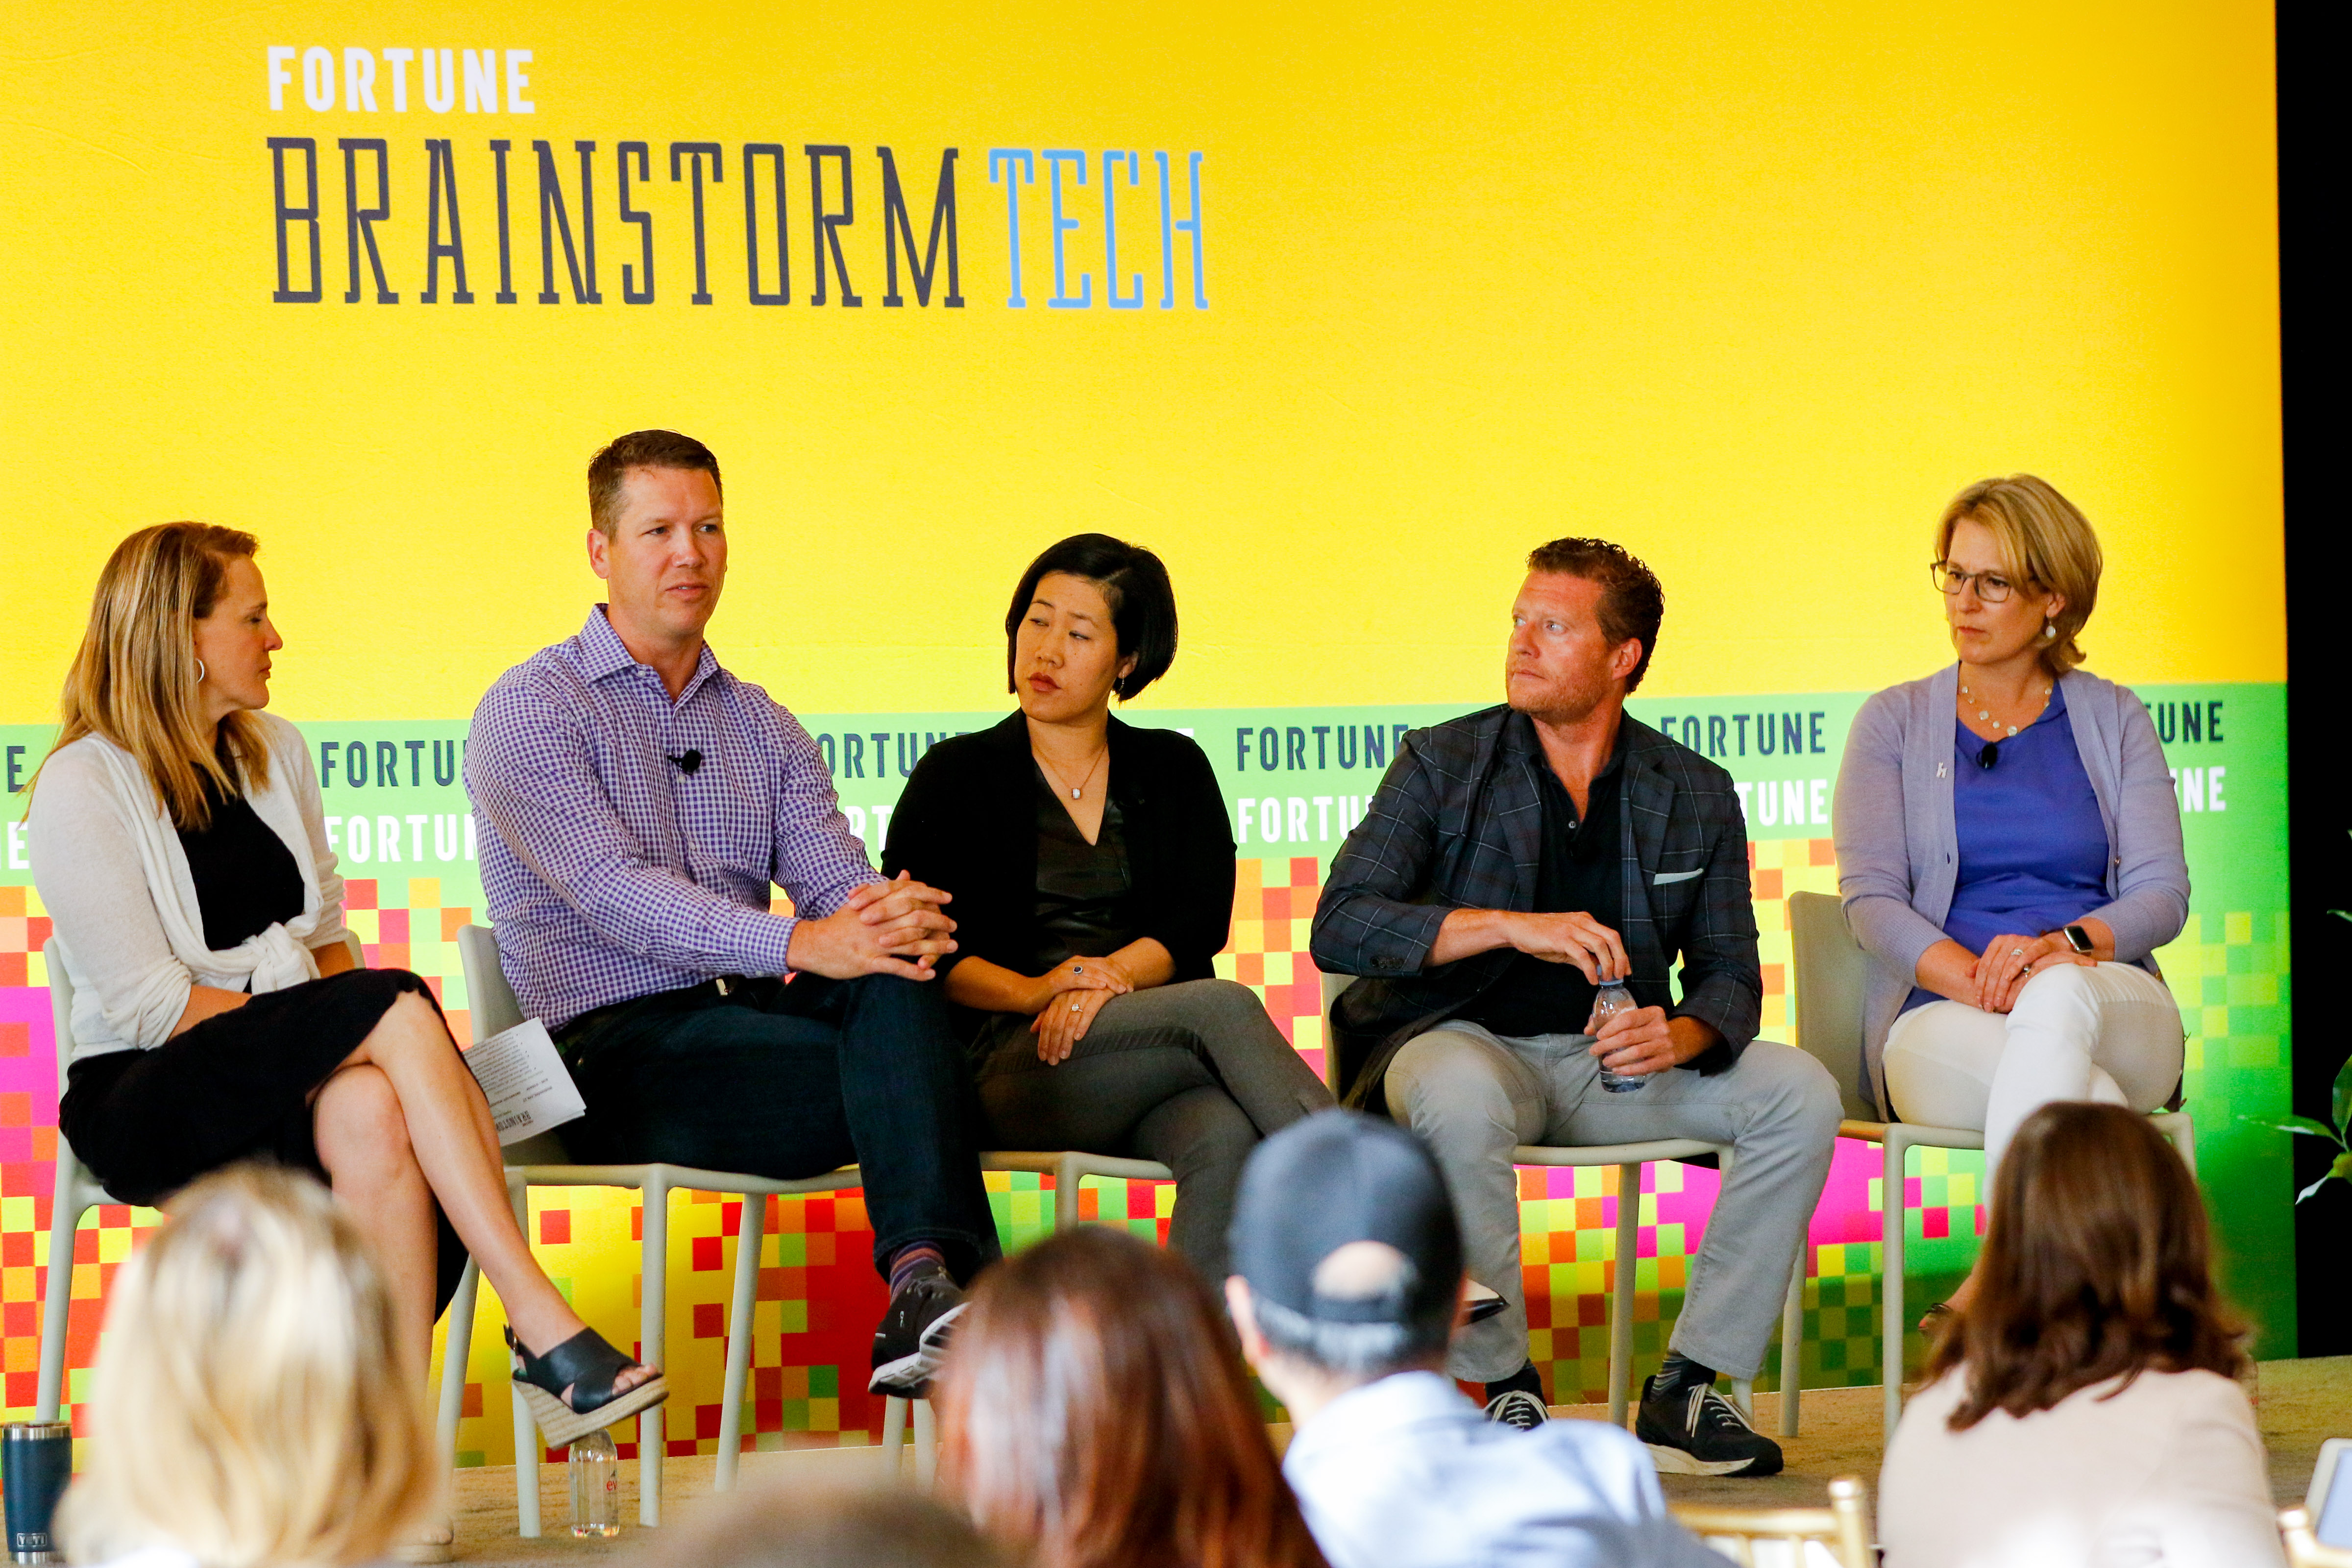 A panel at Fortune Brainstorm Tech addressed how to get more women on corporate boards.